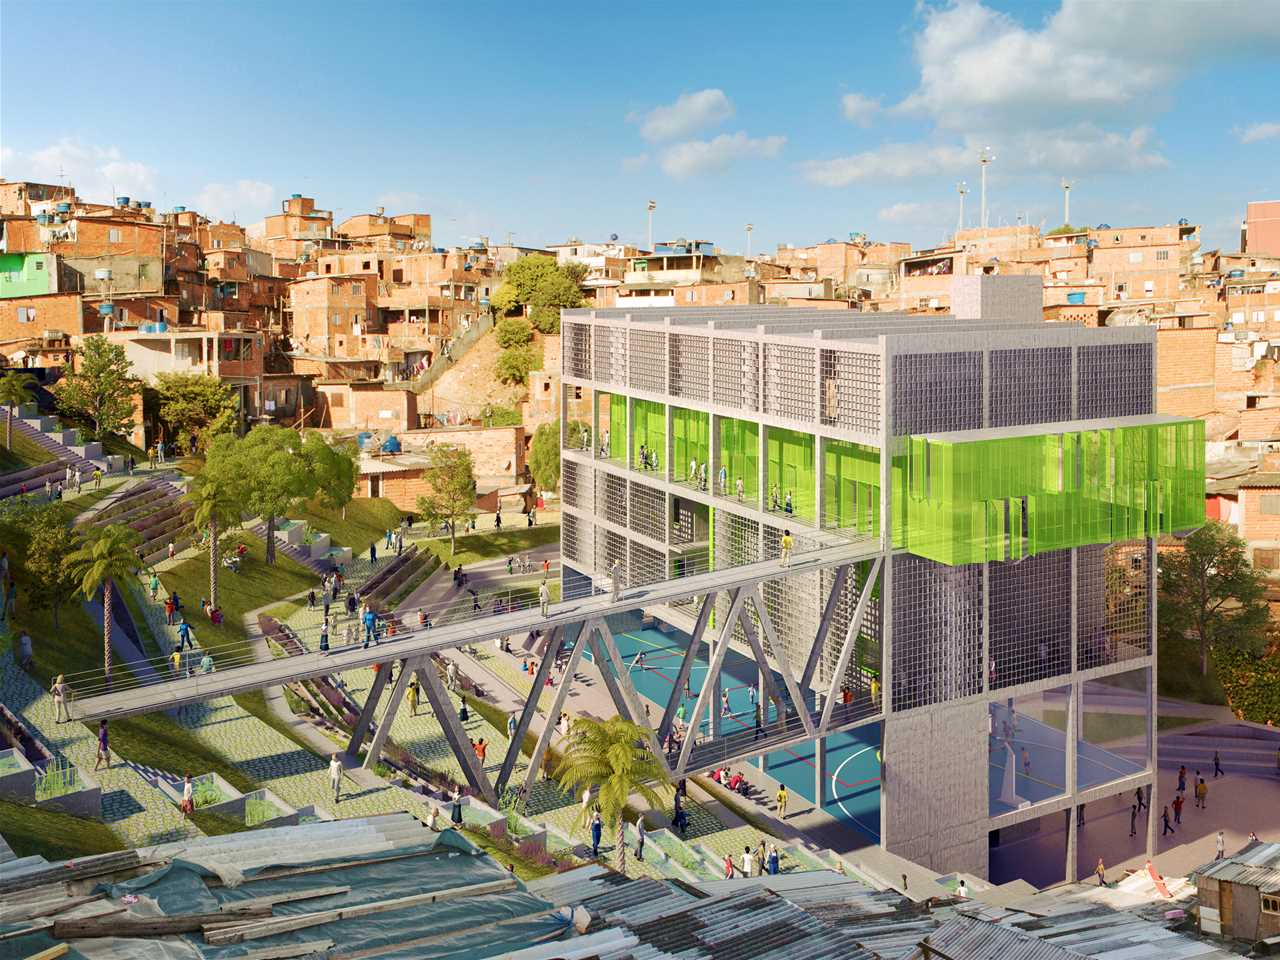 Global Holcim Awards Silver - Urban remediation and civic infrastructure hub, São Paulo Brazil